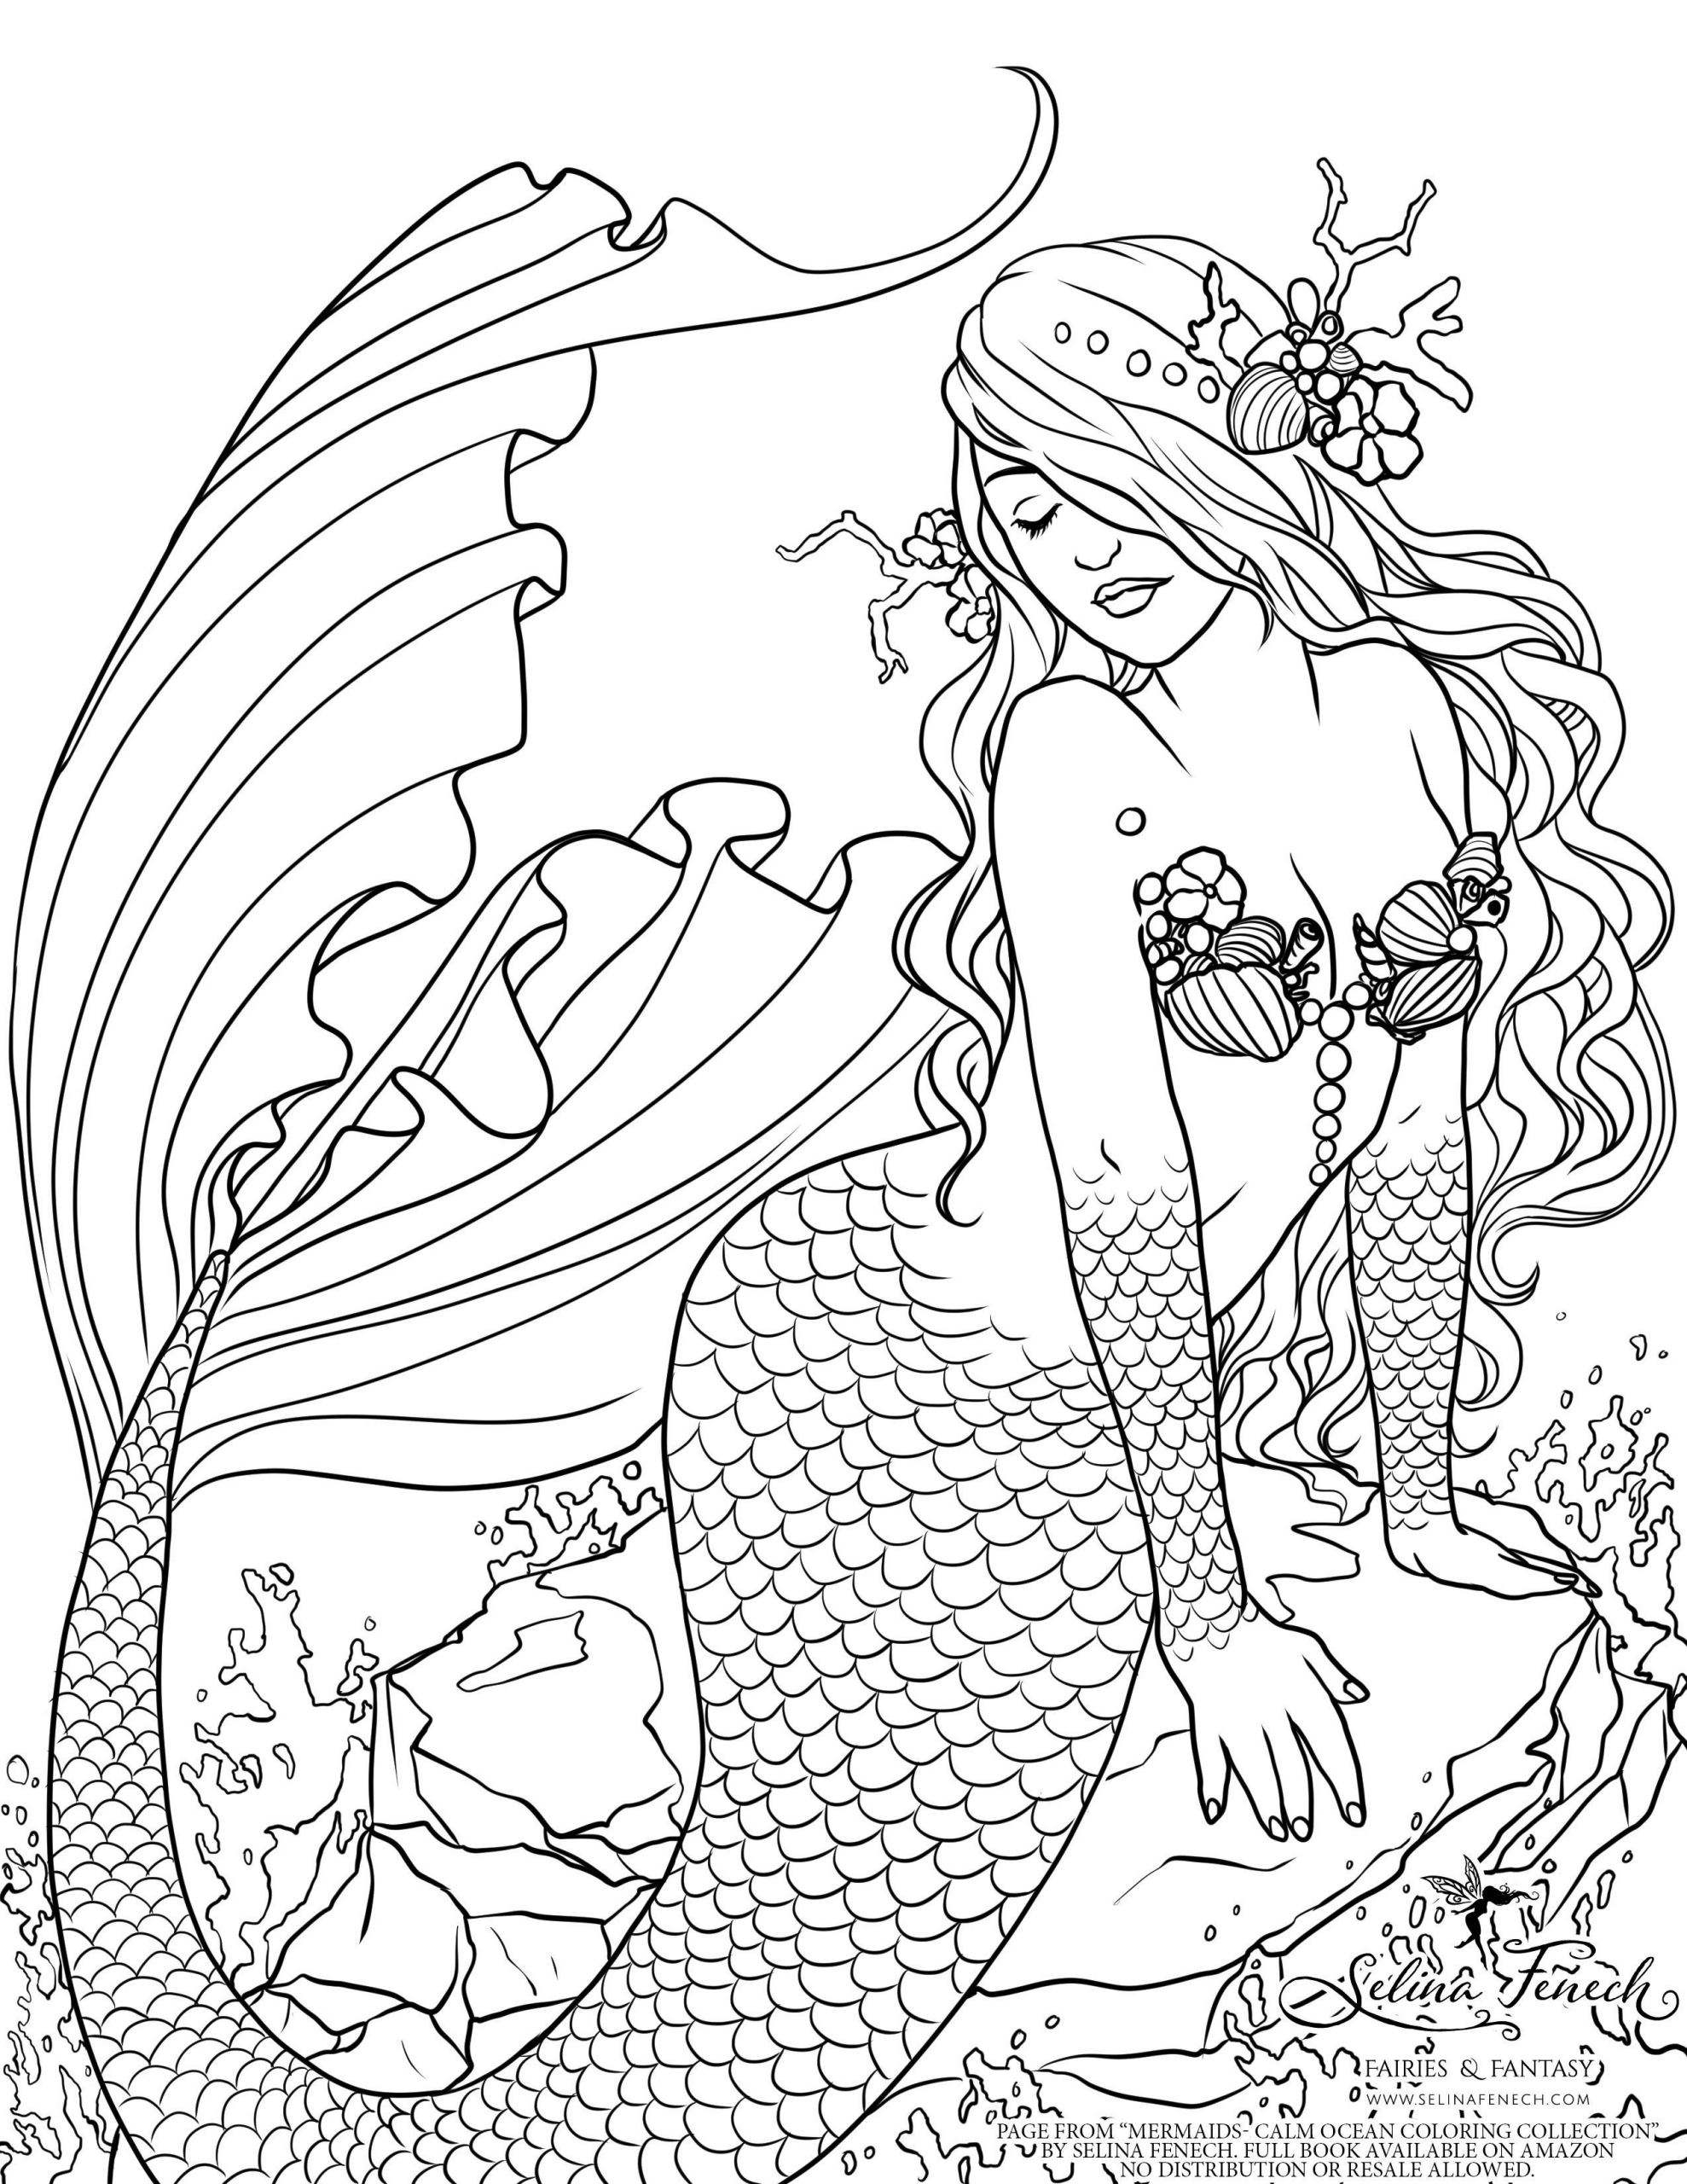 Mermaid Coloring Page For Adults Youngandtae Com In 2020 Mermaid Coloring Book Mermaid Coloring Pages Fairy Coloring Pages